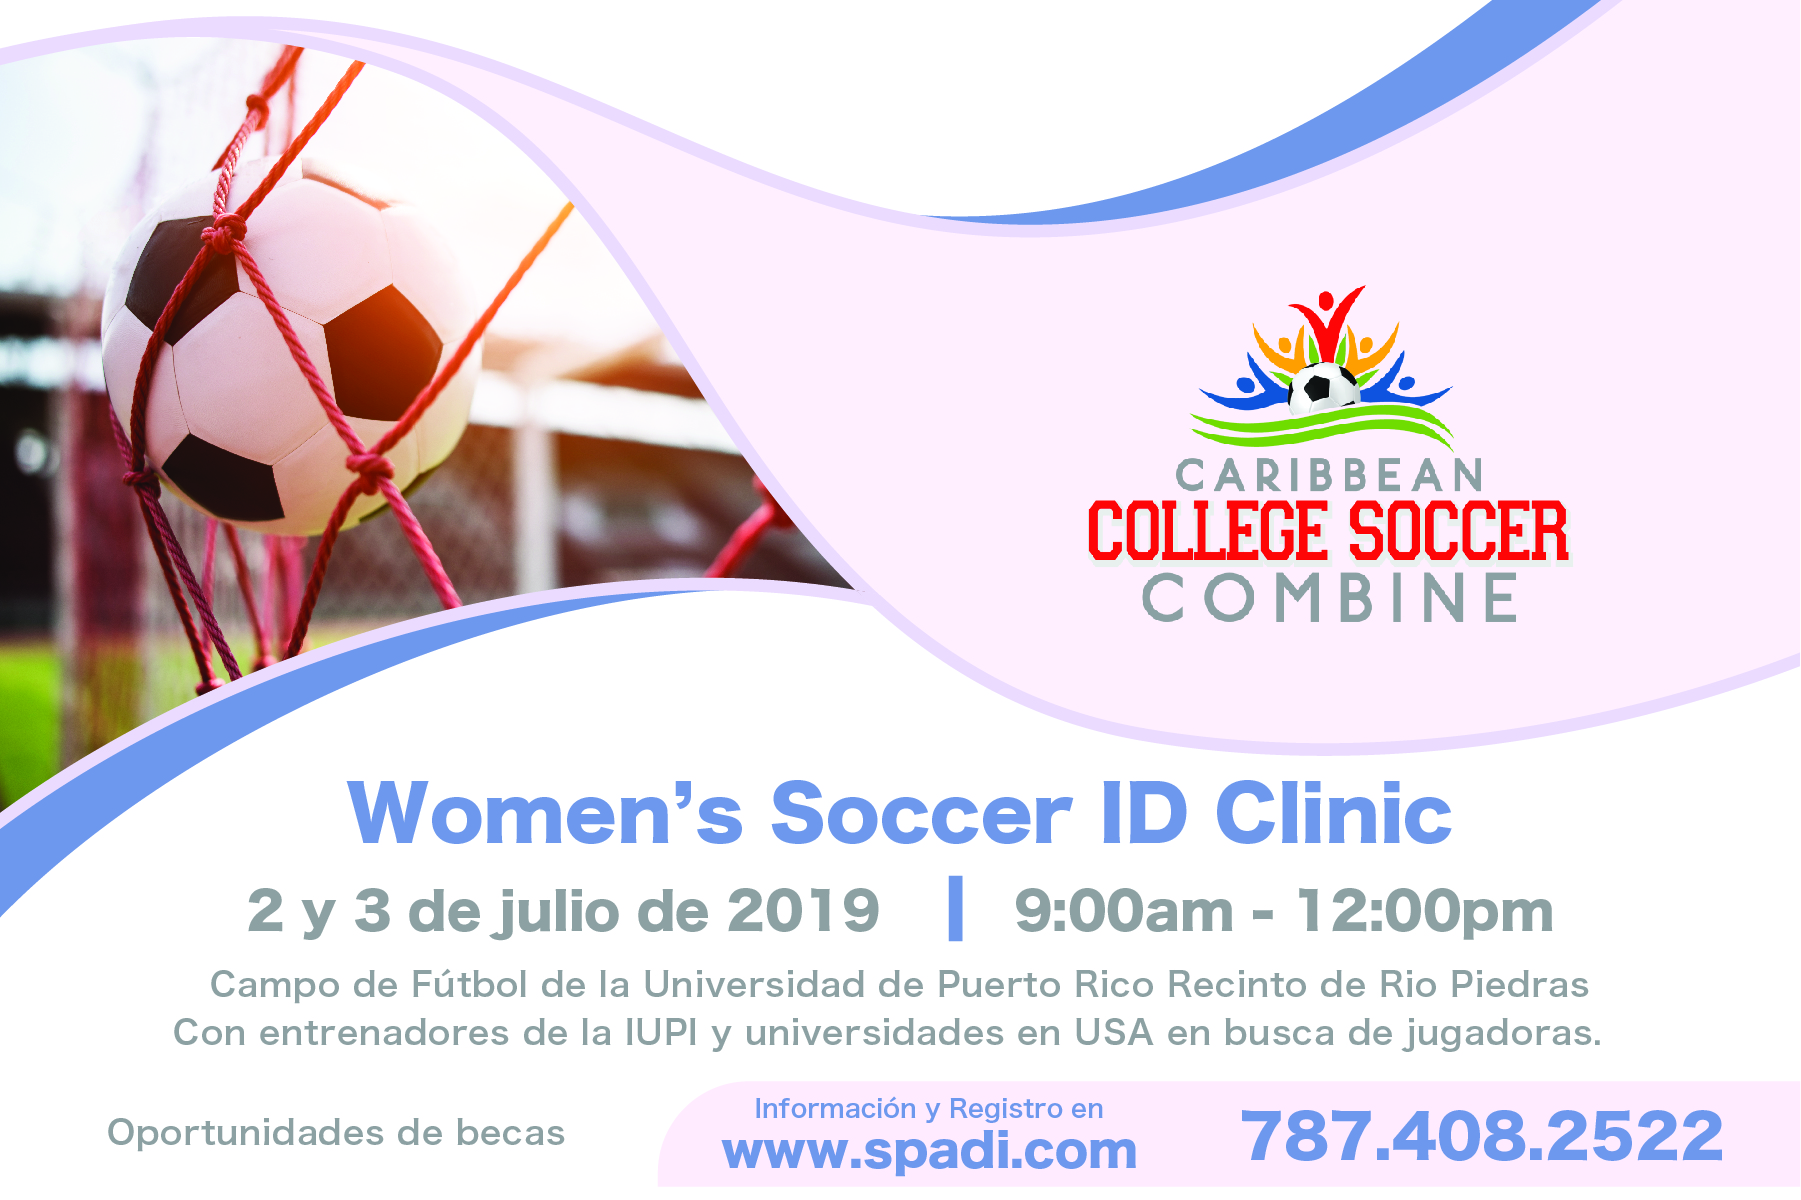 Women's Soccer ID Clinic - Caribbean College Soccer Combine